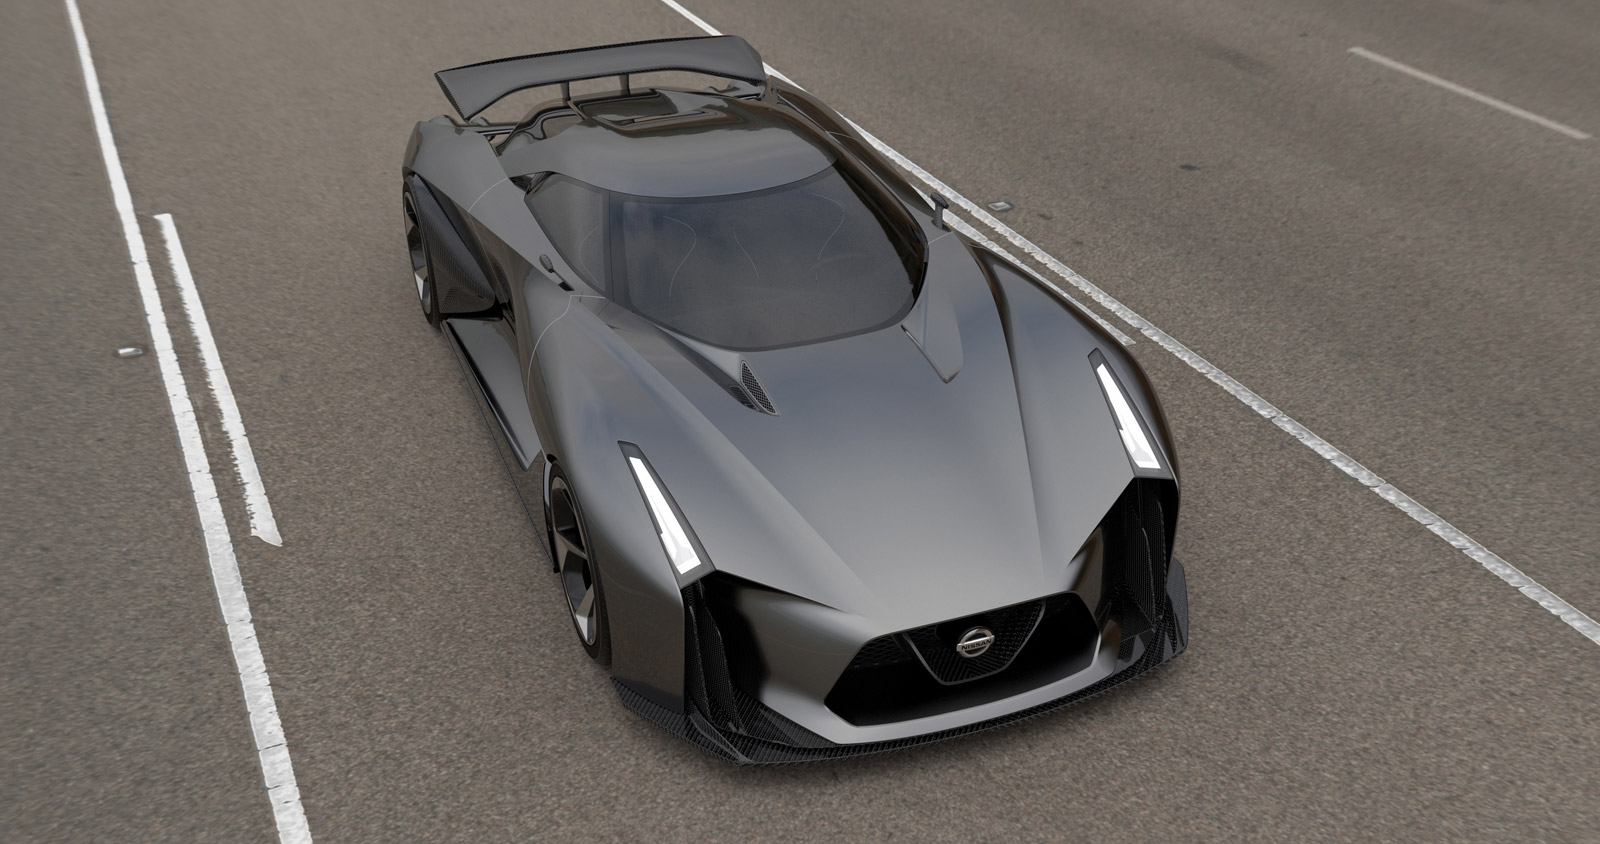 Nissan Concept 2020 Vision Gran Turismo Revealed, Likely ...